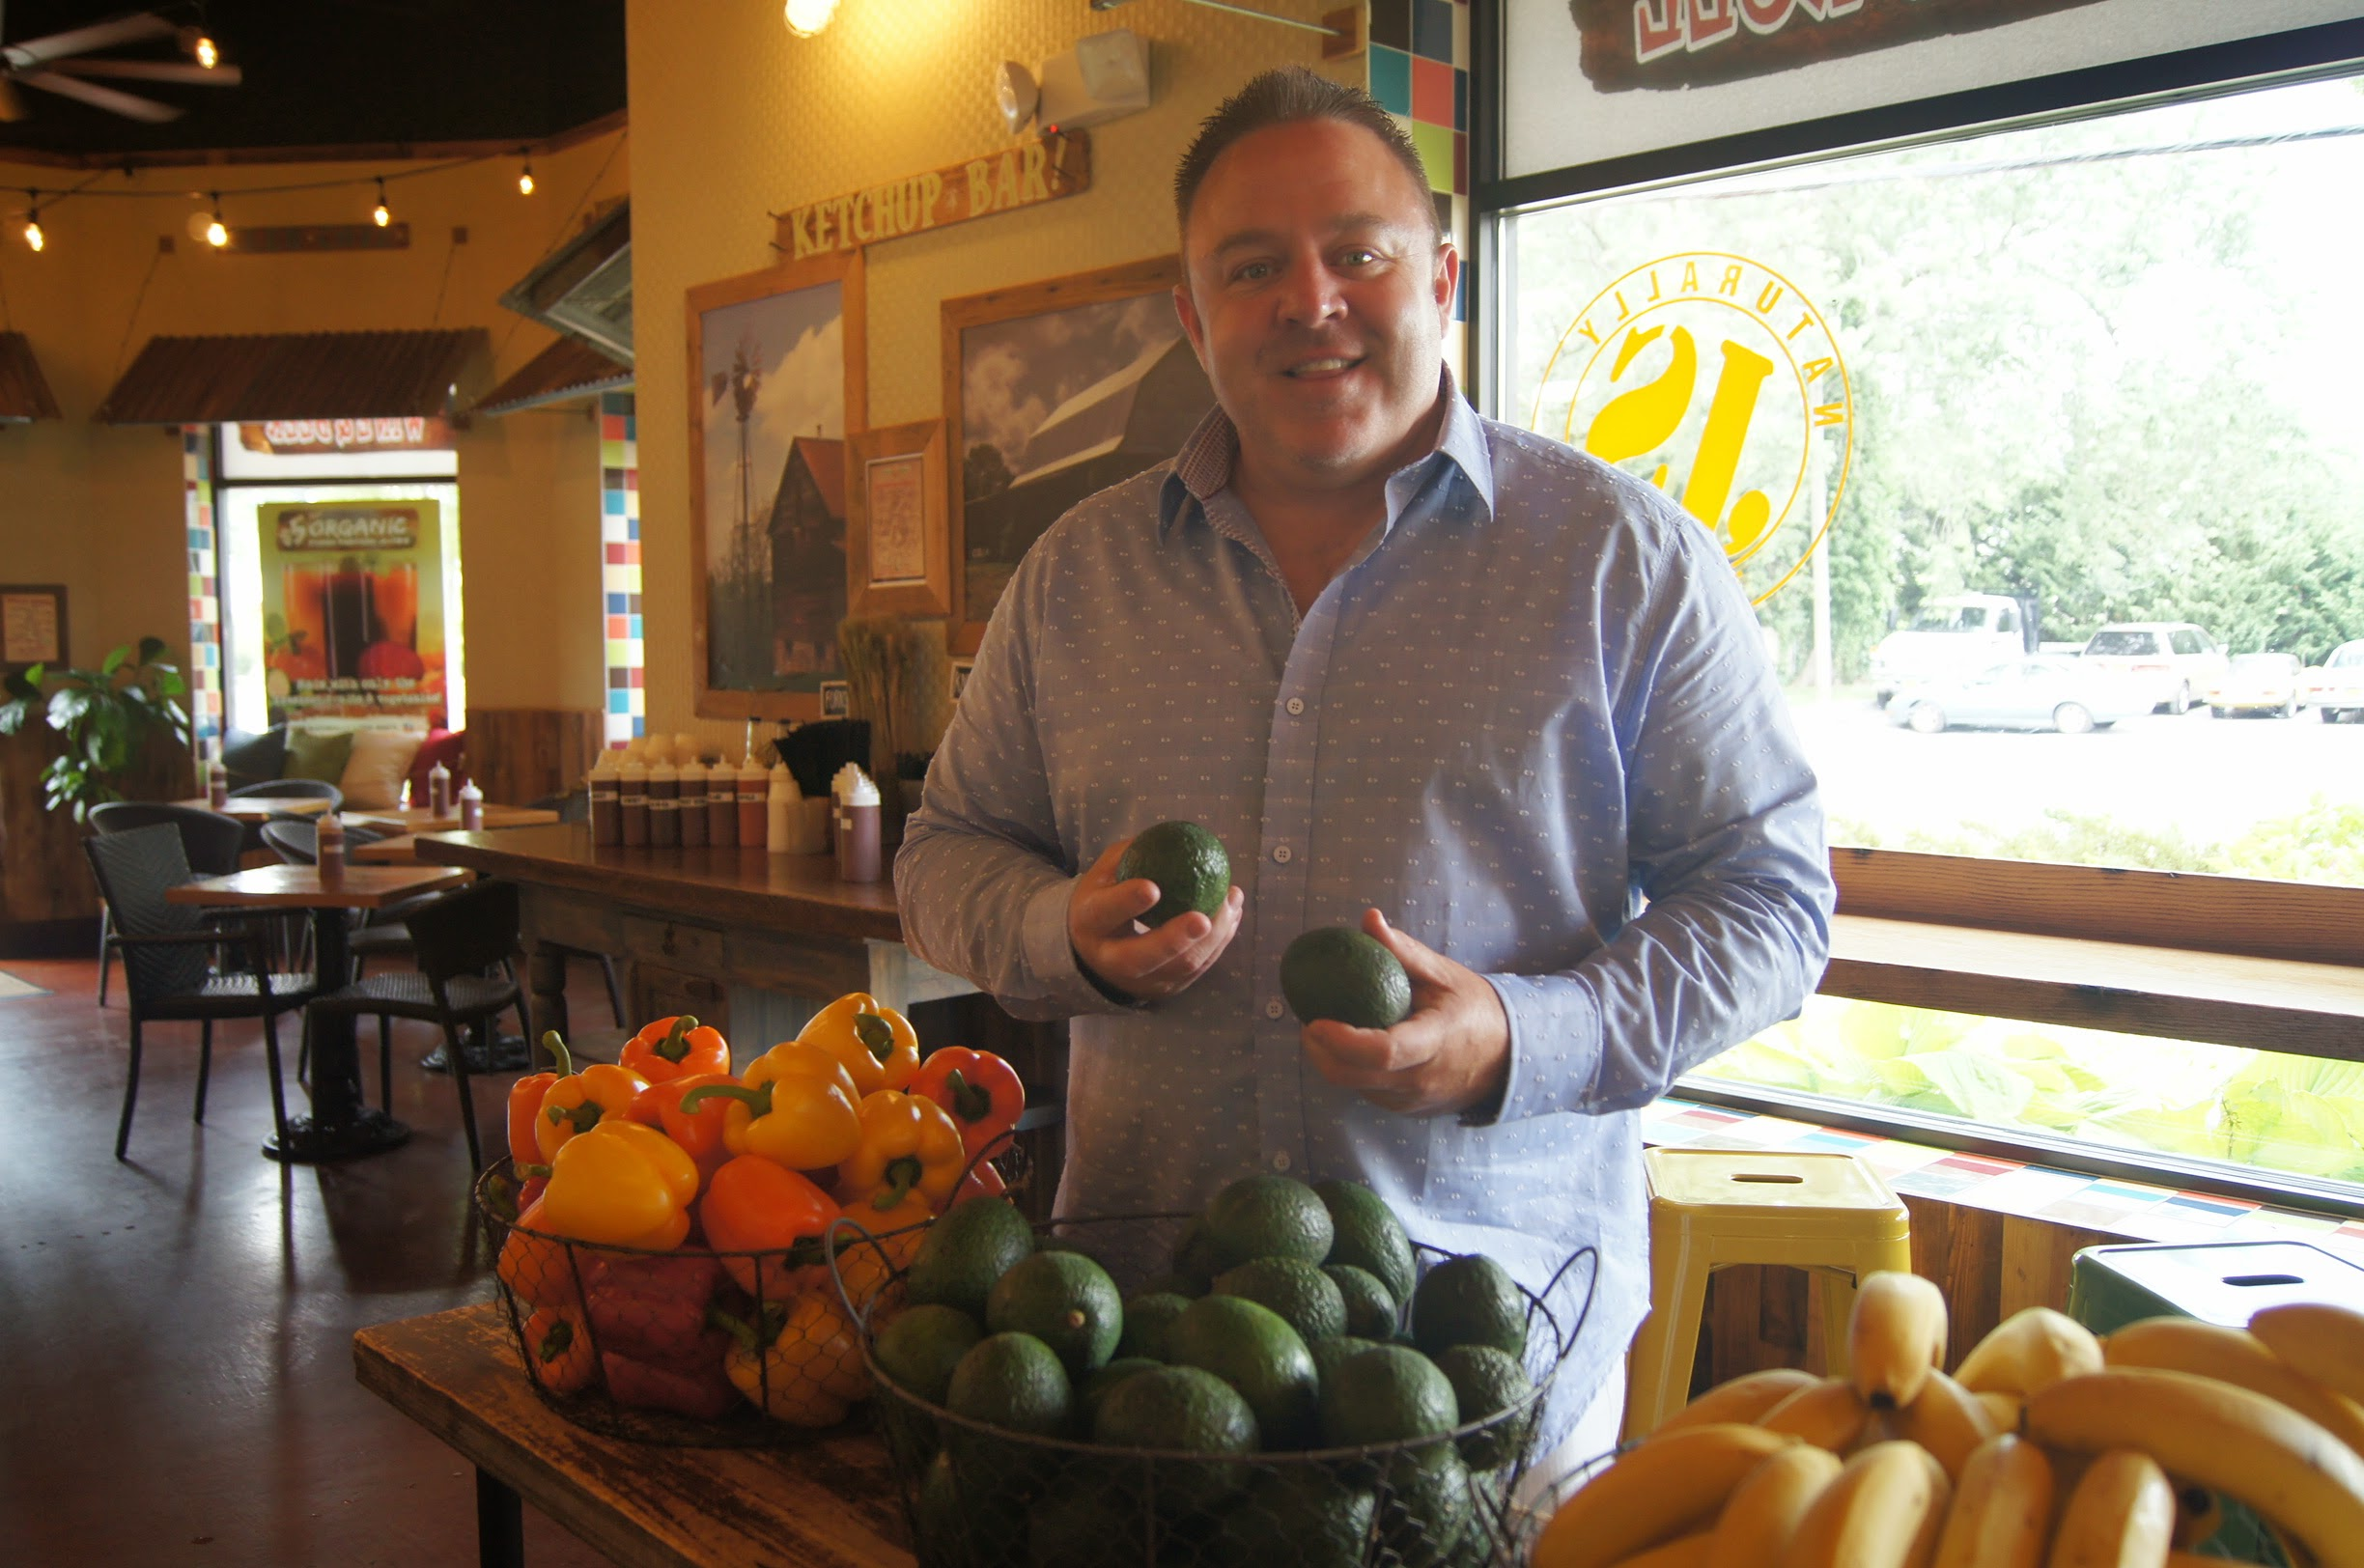 Restaurateur Willie Degel expands into high quality organic dining done fast